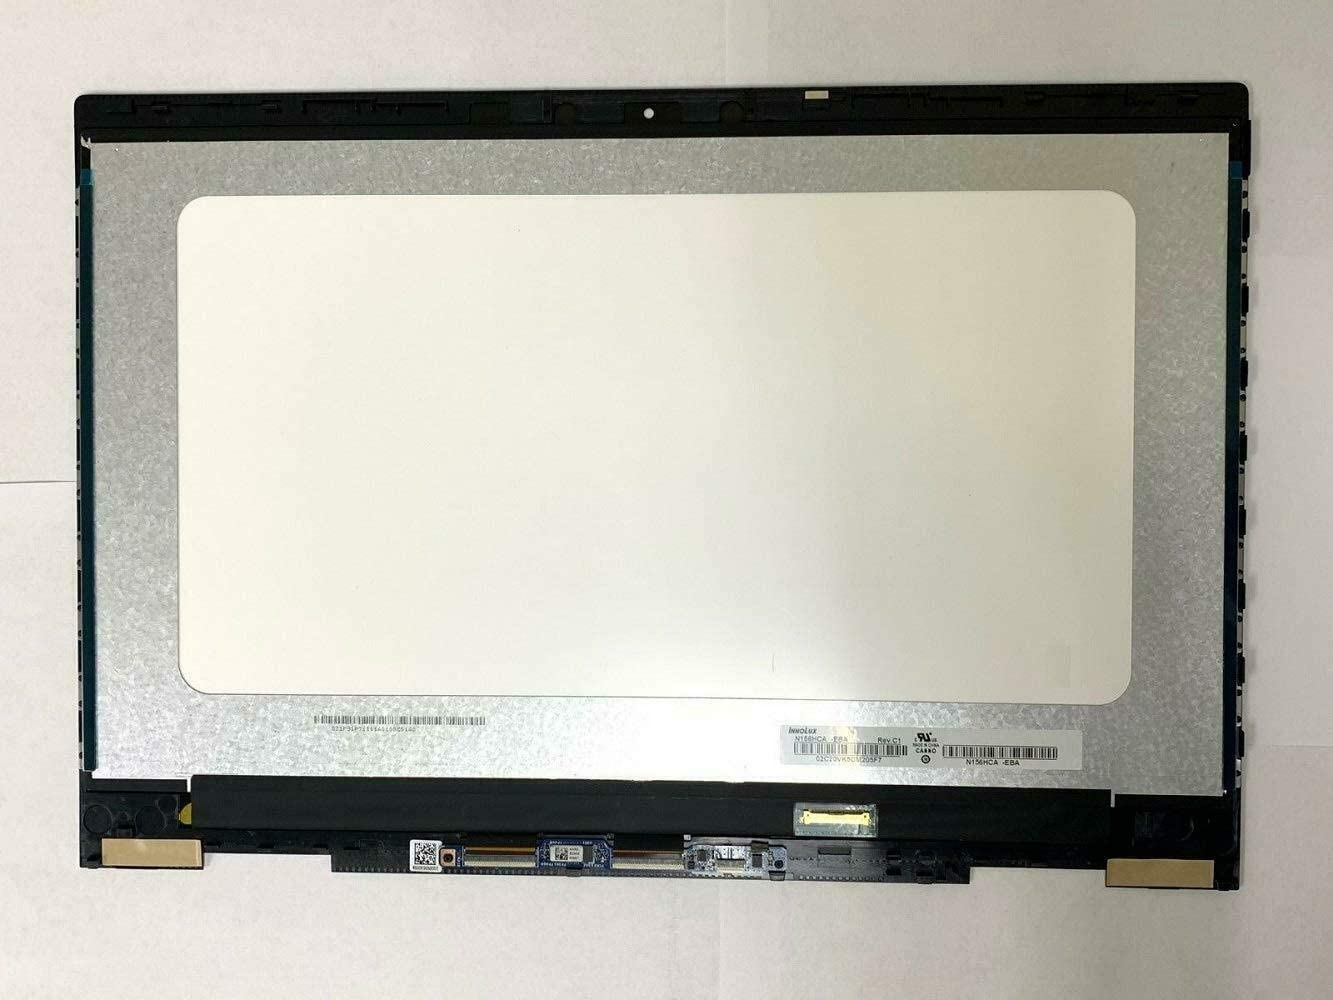 Fits Asus Zephyrus GX501VS JYLTK New Genuine 15.6 FHD 120HZ LCD Screen IPS LED Display Panel Only 1920x1080 Non-Touch